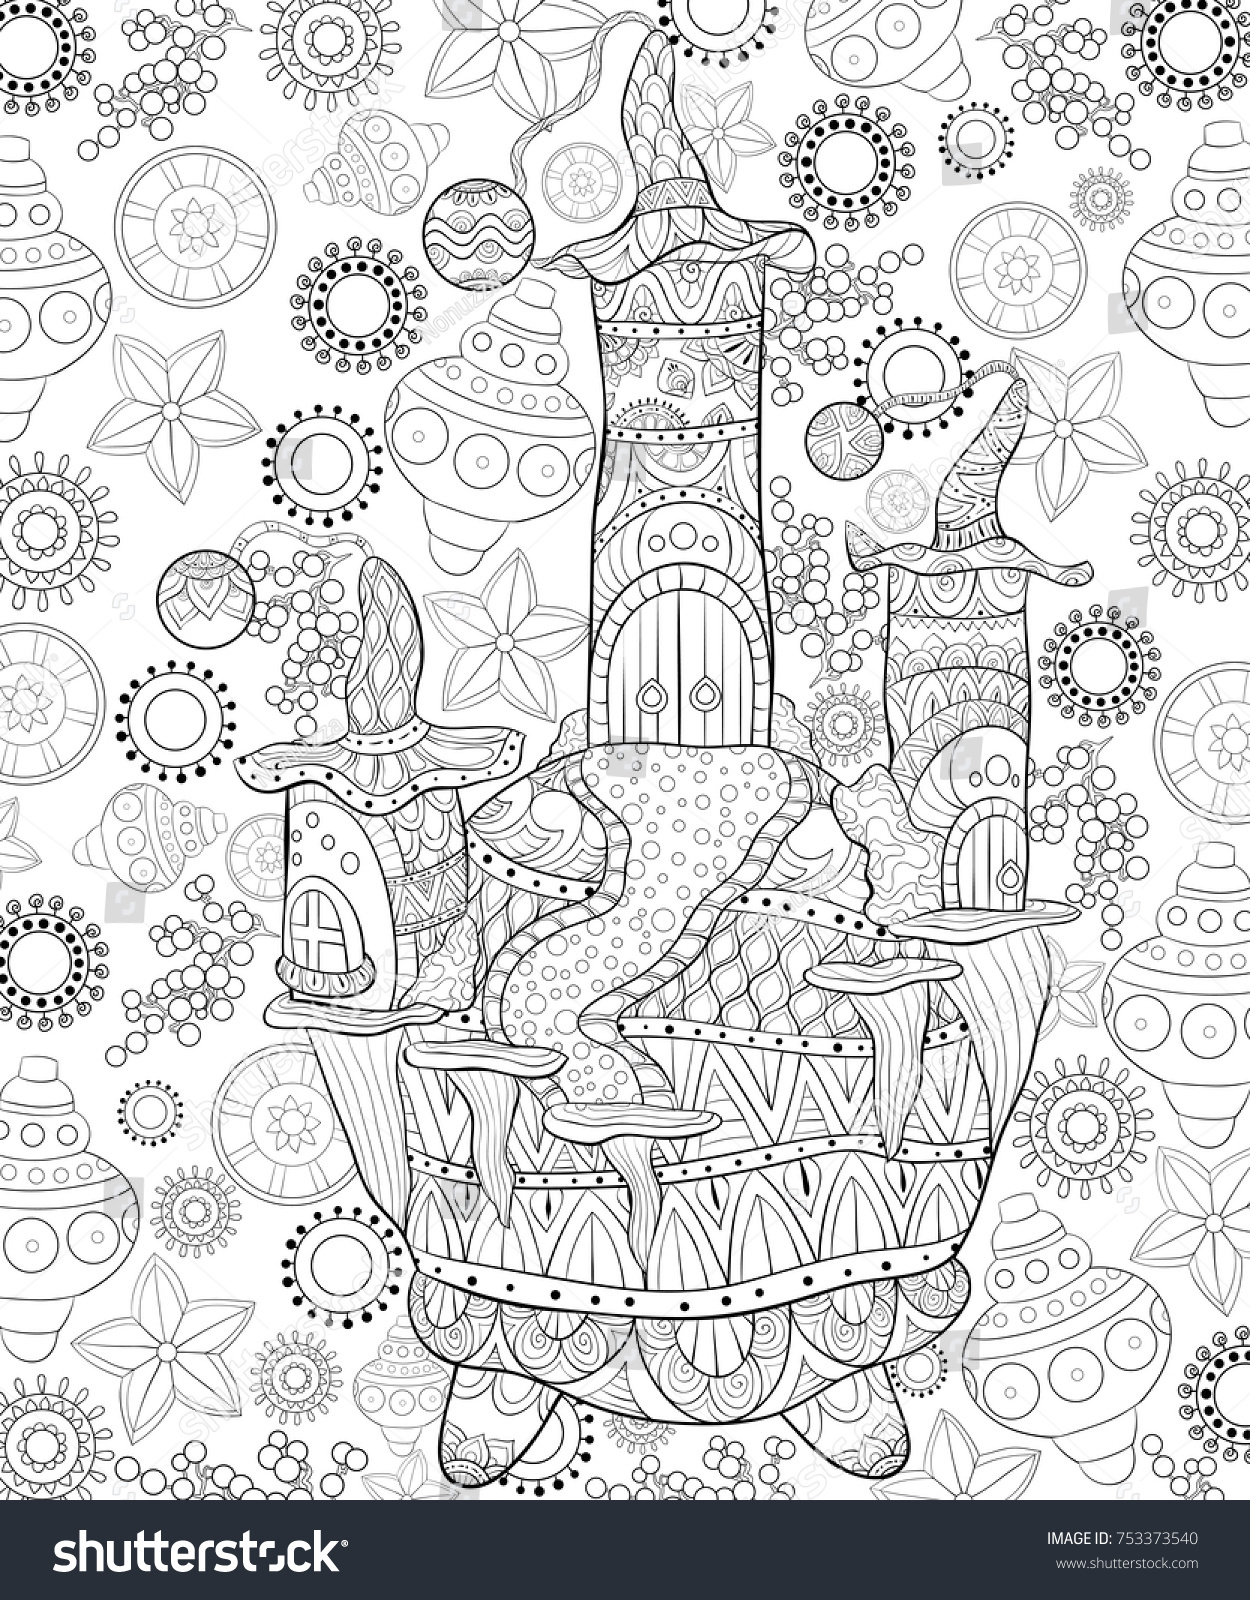 adult coloring pagebook a christmas cute illustration with house of santa claus on the